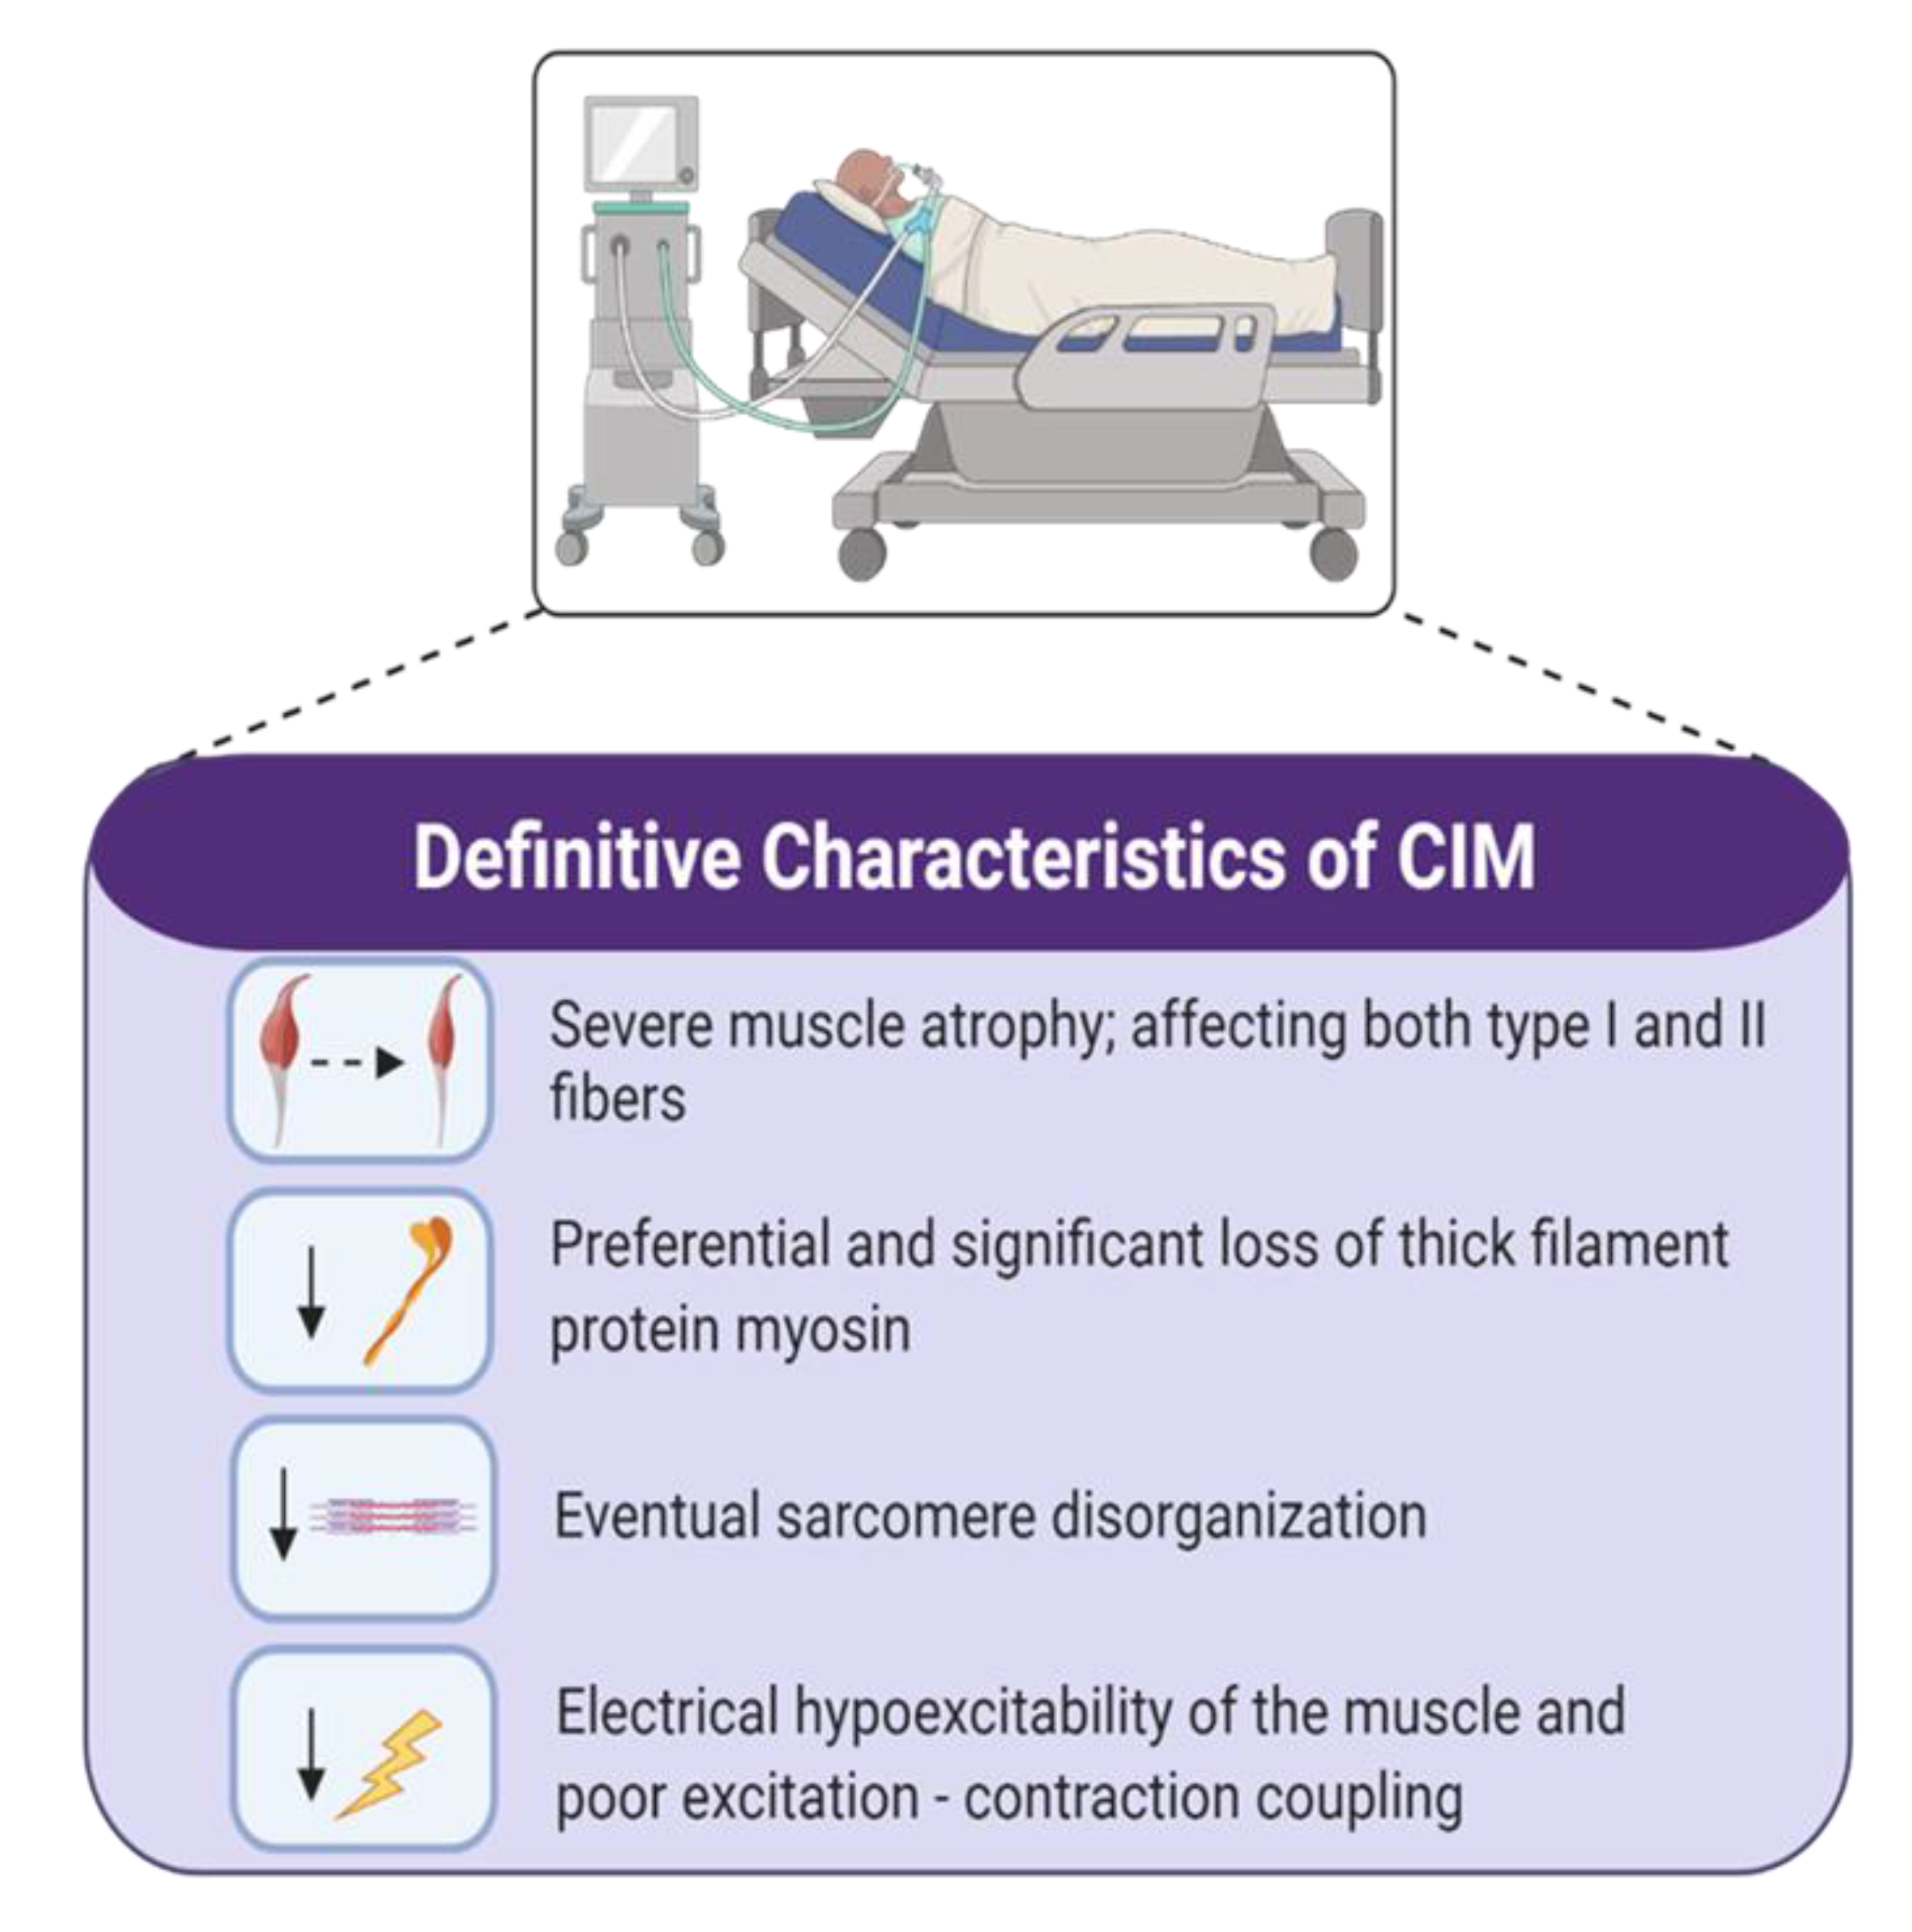 Ijms Free Full Text Intensive Care Unit Acquired Weakness Not Just Another Muscle Atrophying Condition Html